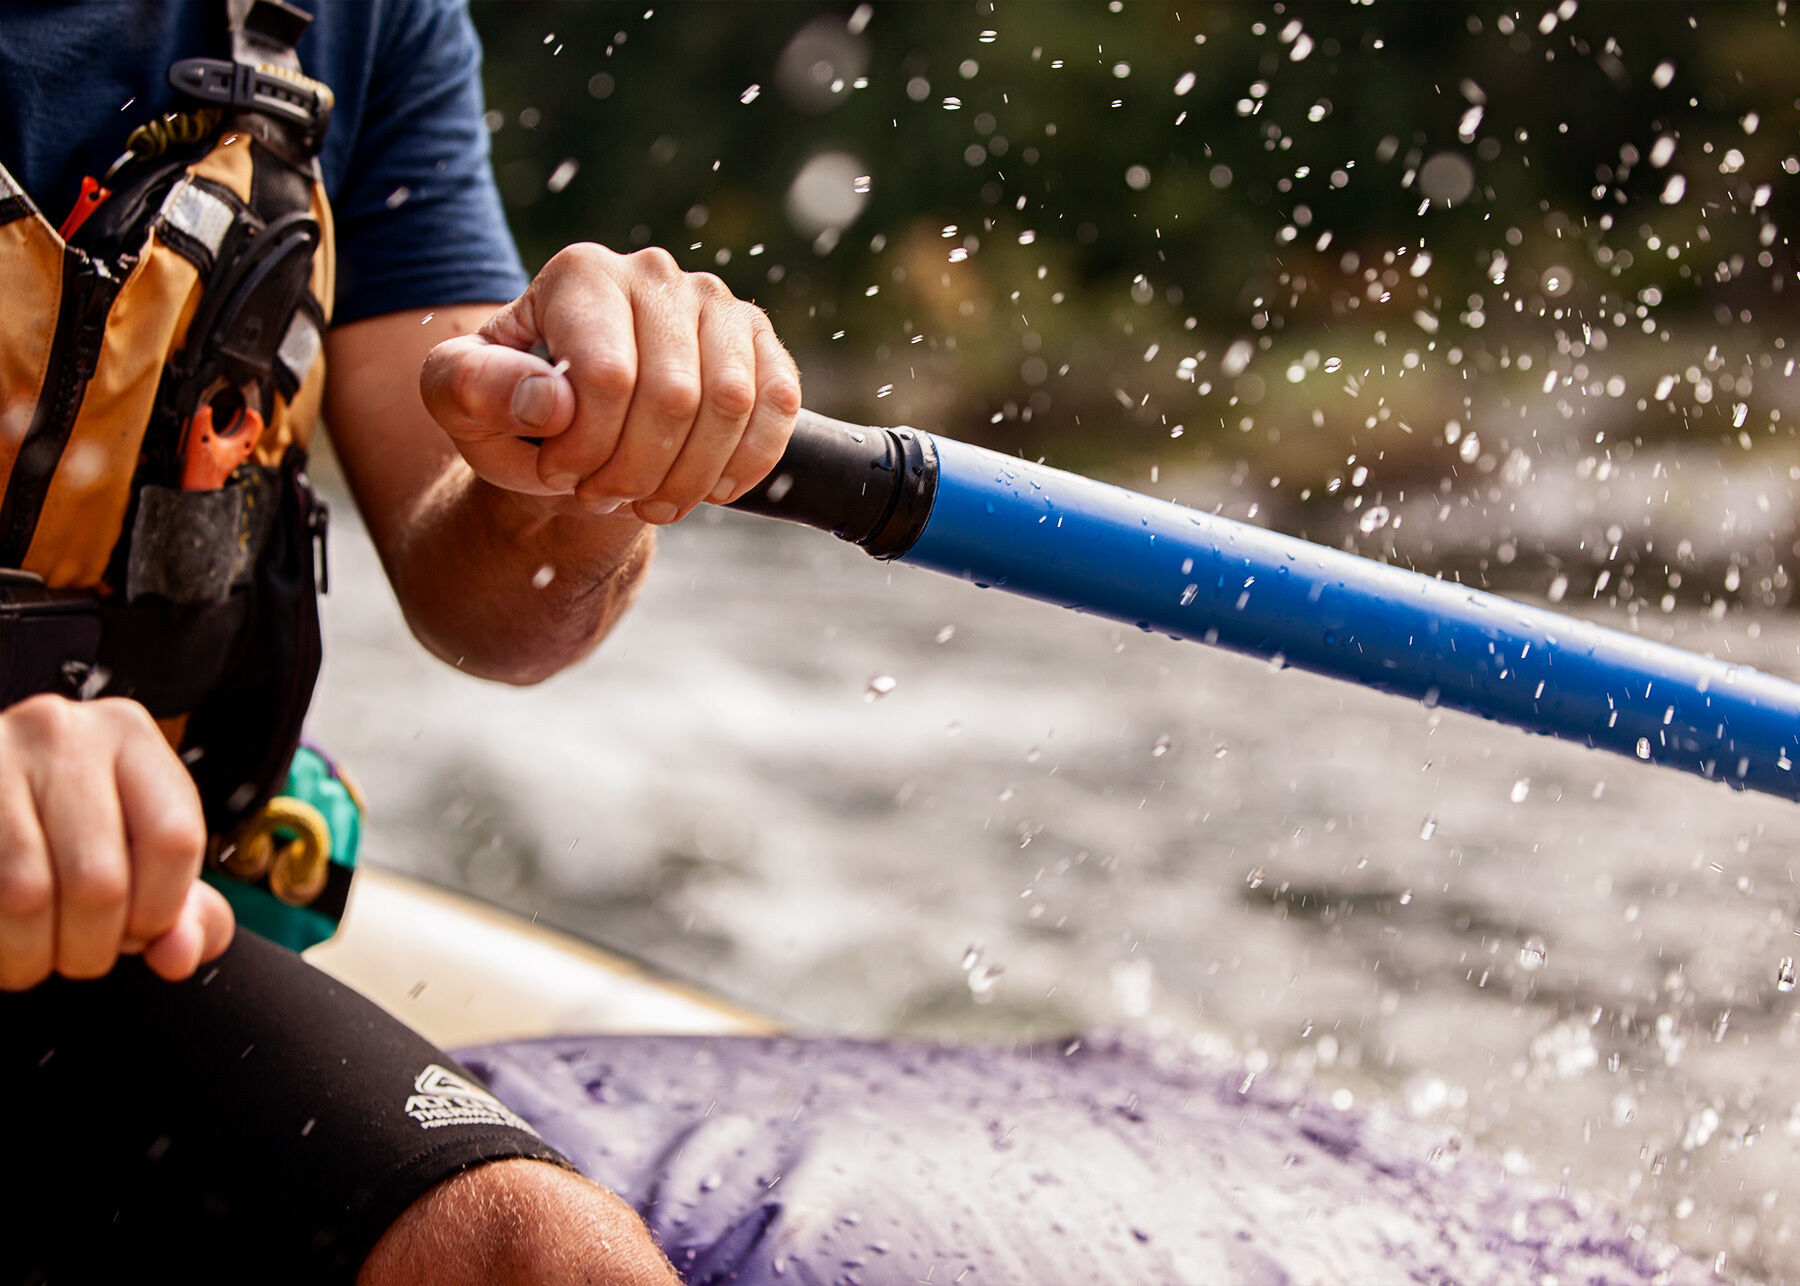 Detail of Danial operating rafting oars on Rogue River, Oregon